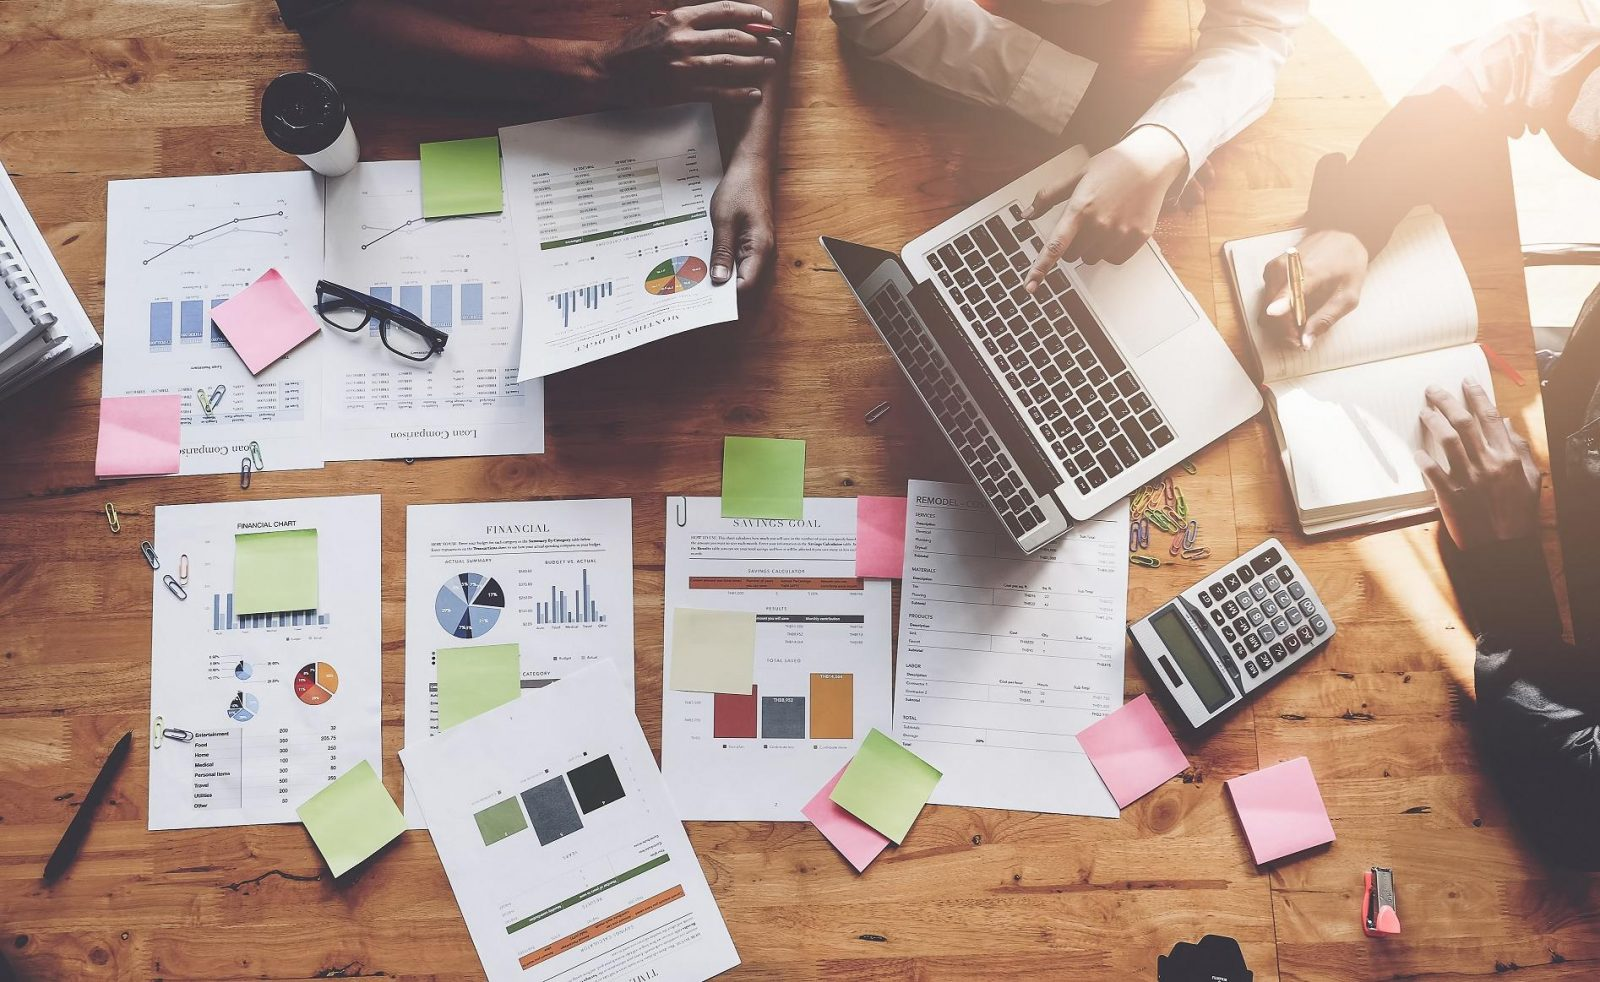 People work around a table that is strewn with papers containing graphs, charts, and spreadsheets, along with sticky notes, a laptop, a calculator, and various other objects.arious other objects